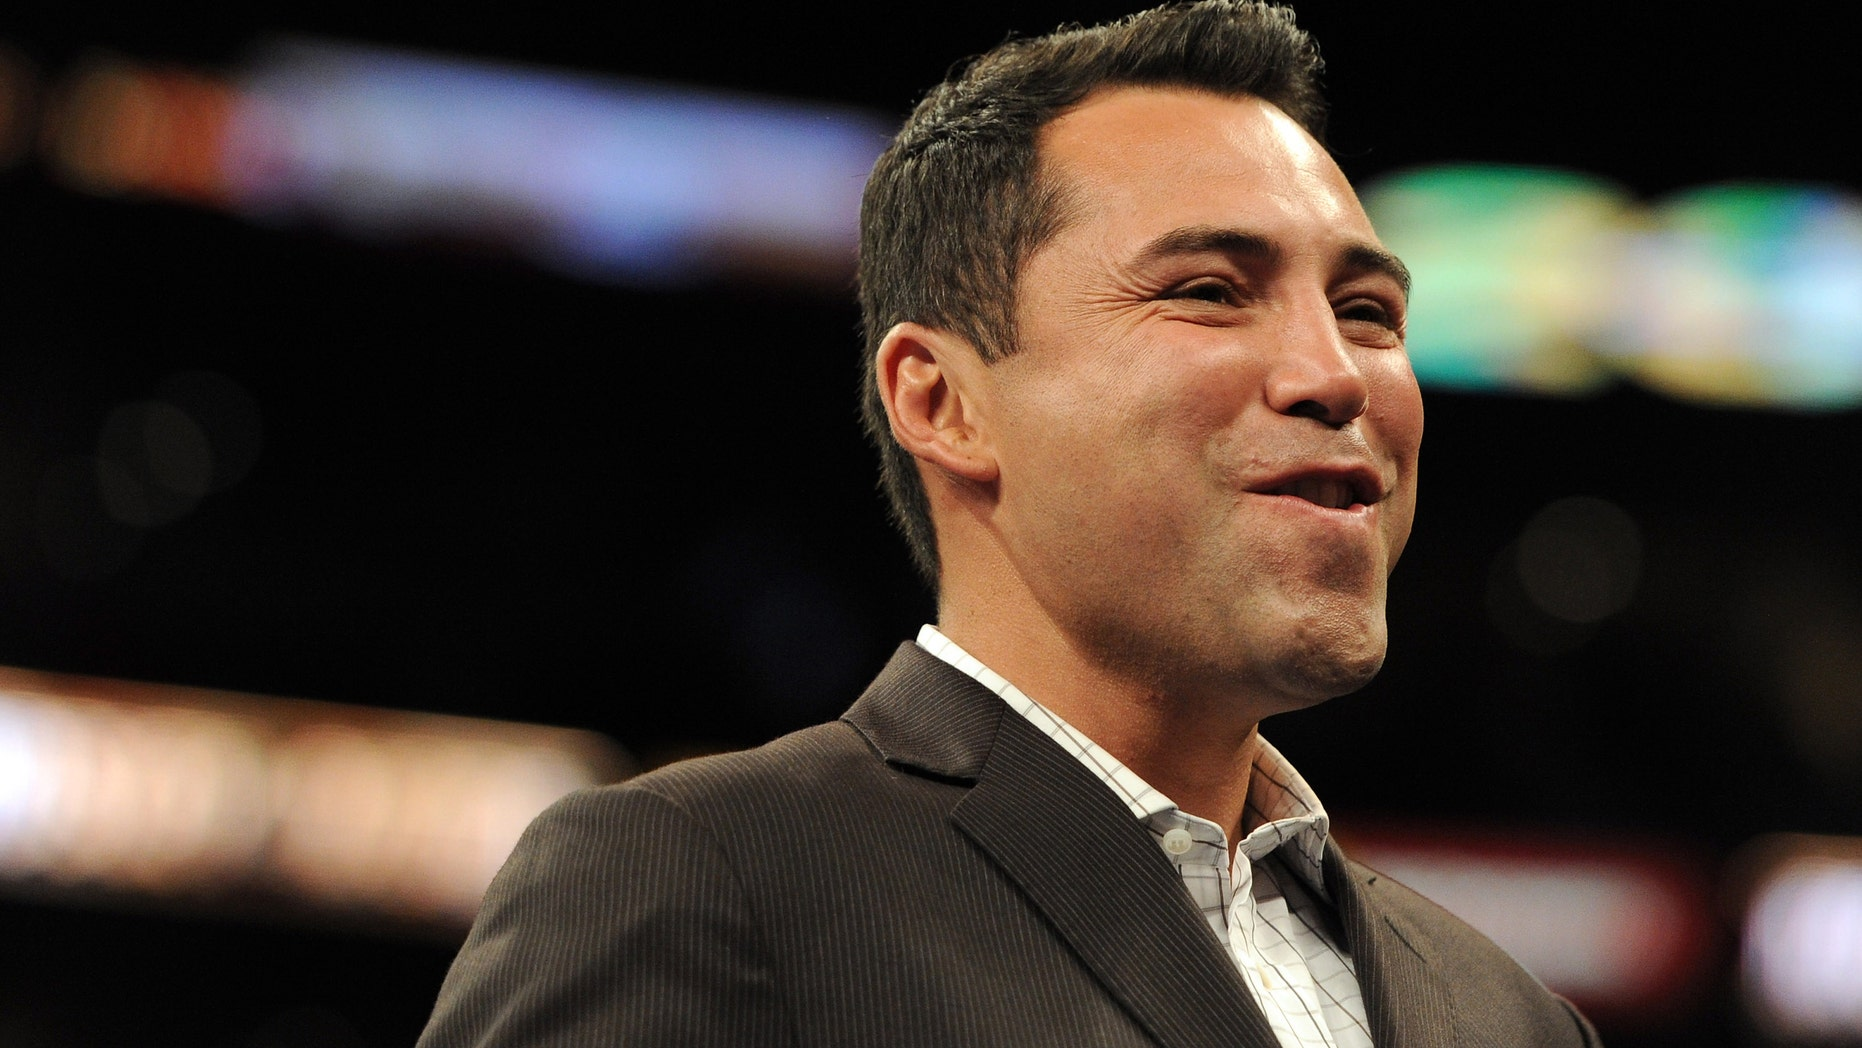 LOS ANGELES, CA - SEPTEMBER 18:  Oscar de la Hoya smiles before the Middleweight bout against Shane Mosley and Sergio Mora at Staples Center on September 18, 2010 in Los Angeles, California.